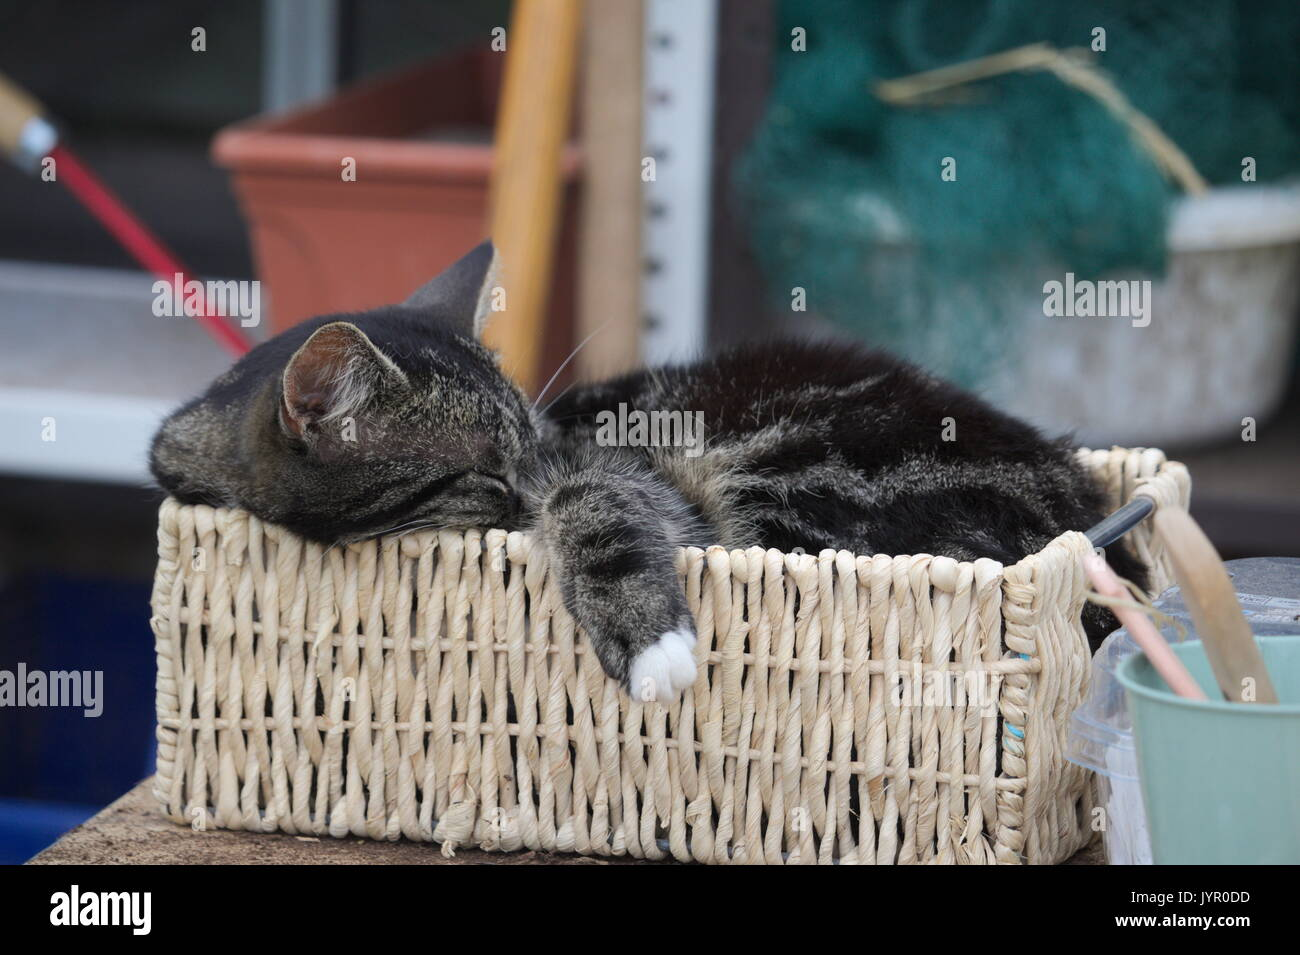 Lazy cat sleeping in a cramped basket - Stock Image